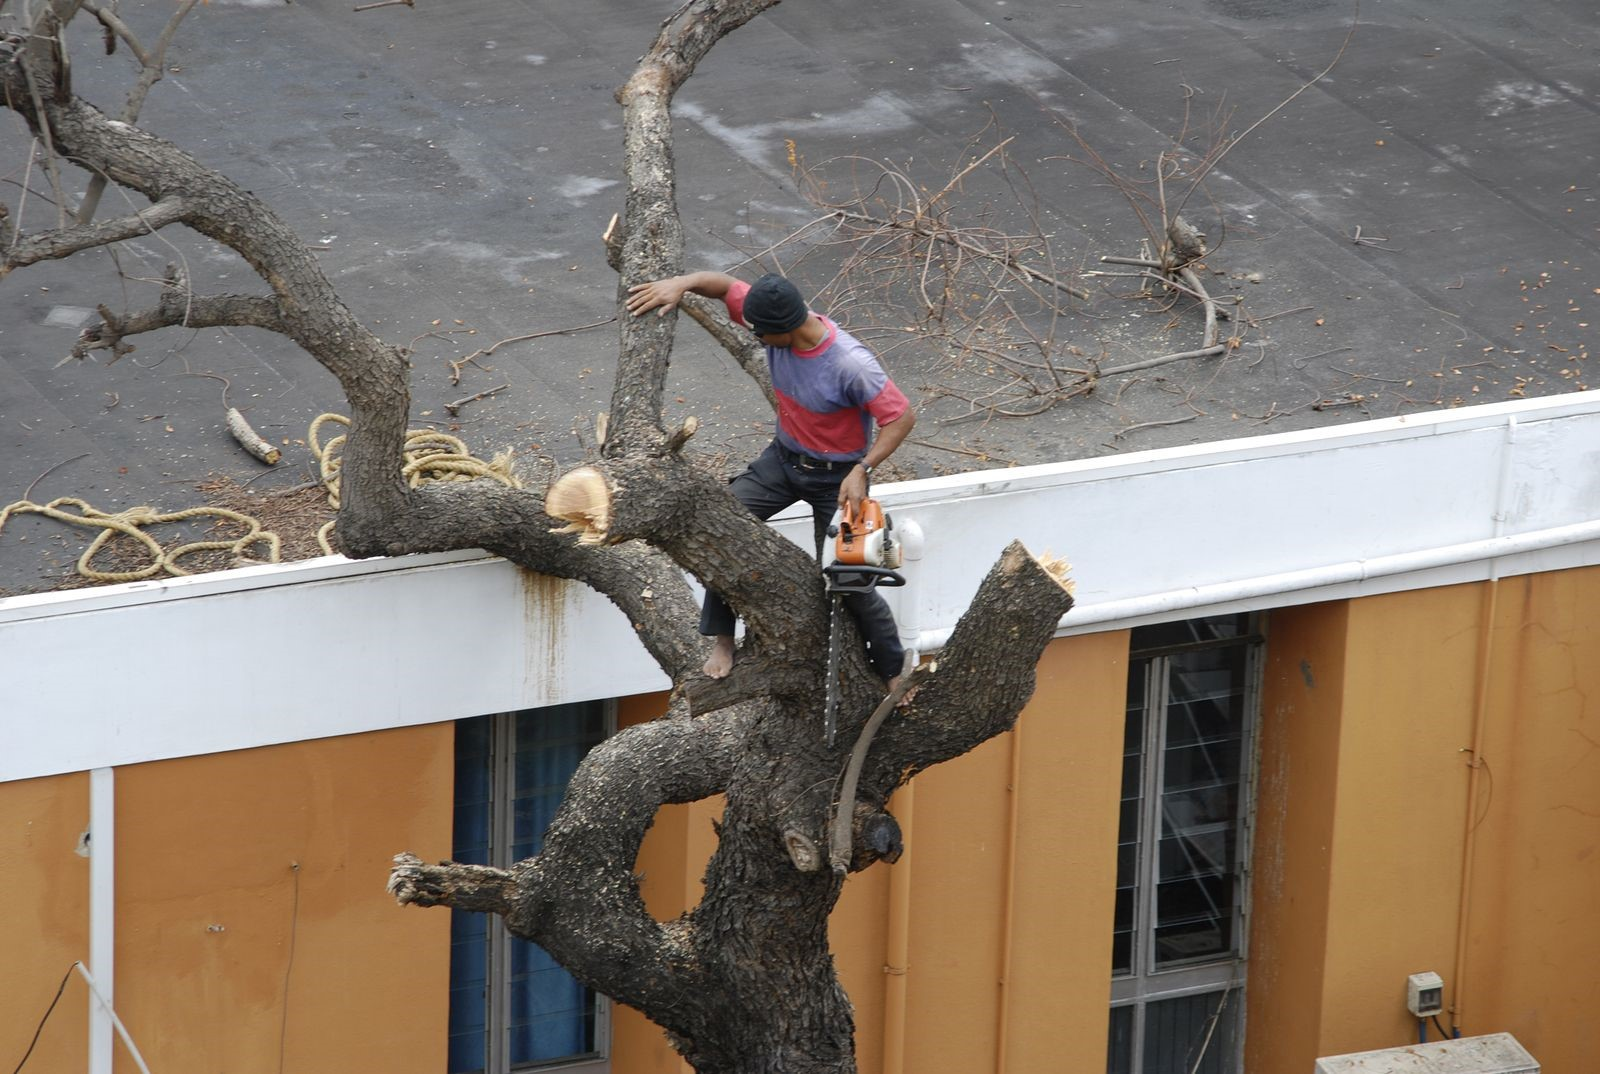 Trees Too Close to Home May Cause Damage, Says Tree Service Company